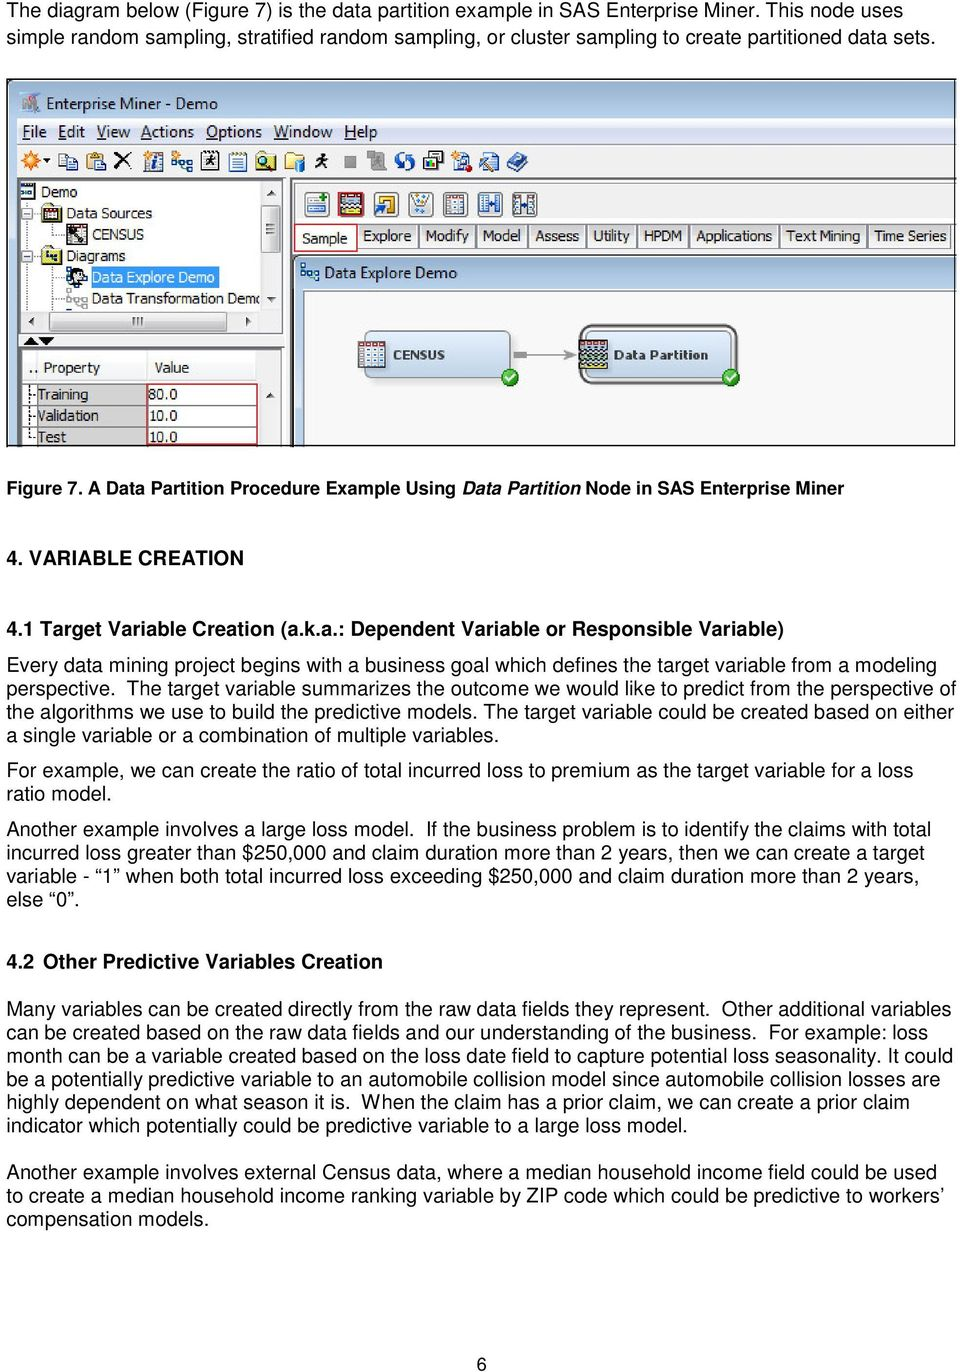 A Data Partition Procedure Example Using Data Partition Node in SAS Enterprise Miner 4. VARIABLE CREATION 4.1 Target Variable Creation (a.k.a.: Dependent Variable or Responsible Variable) Every data mining project begins with a business goal which defines the target variable from a modeling perspective.